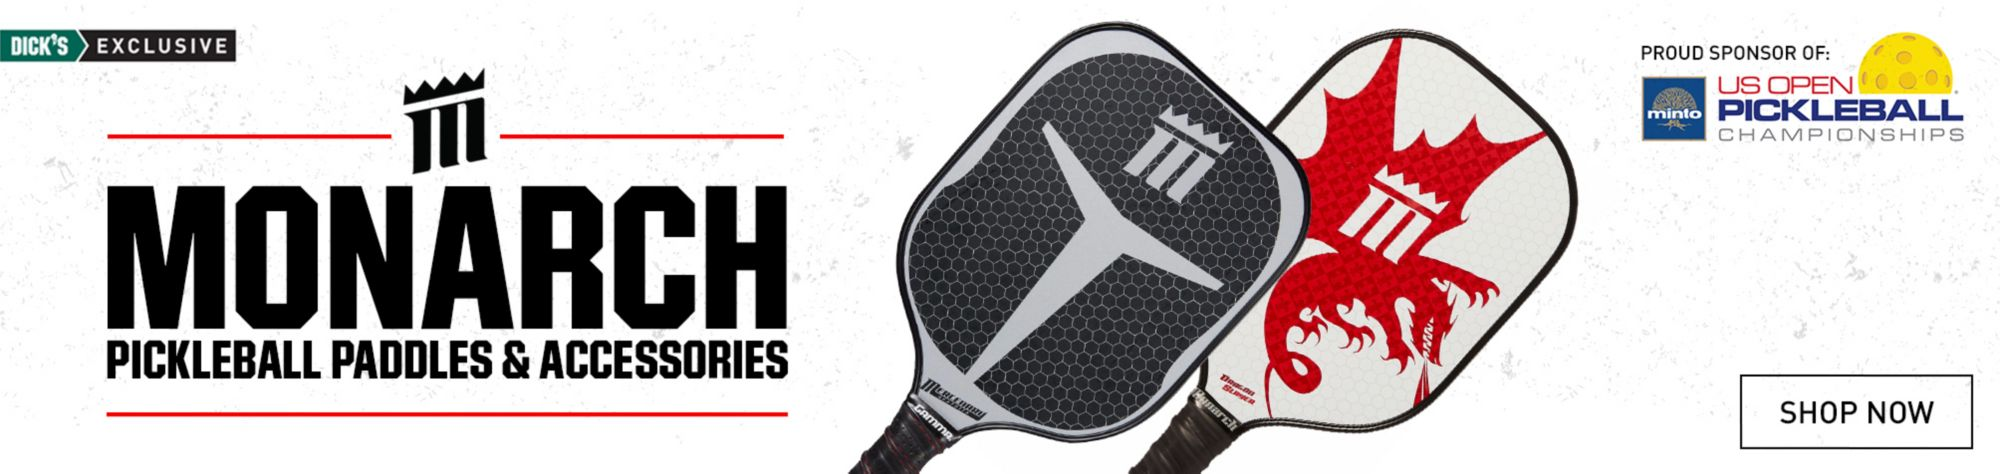 Monarch Pickleball Paddles & Accessories